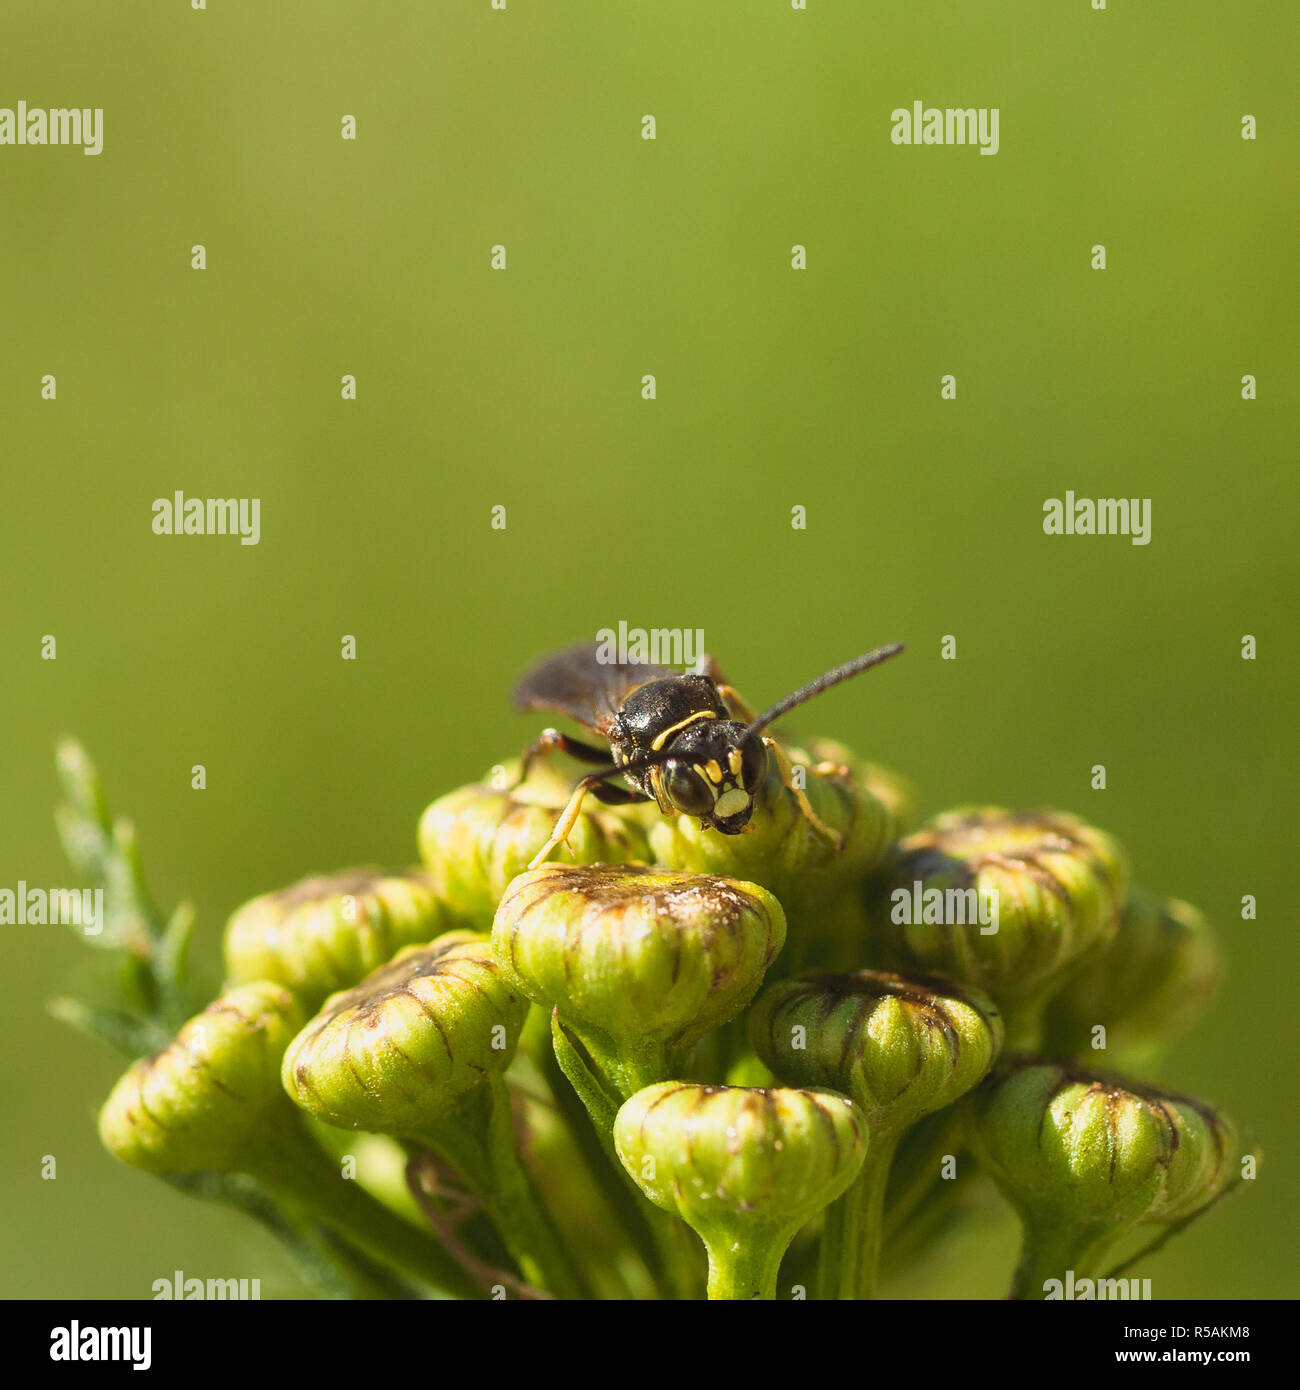 Front View of Wasp on Tansy Flower - Stock Image